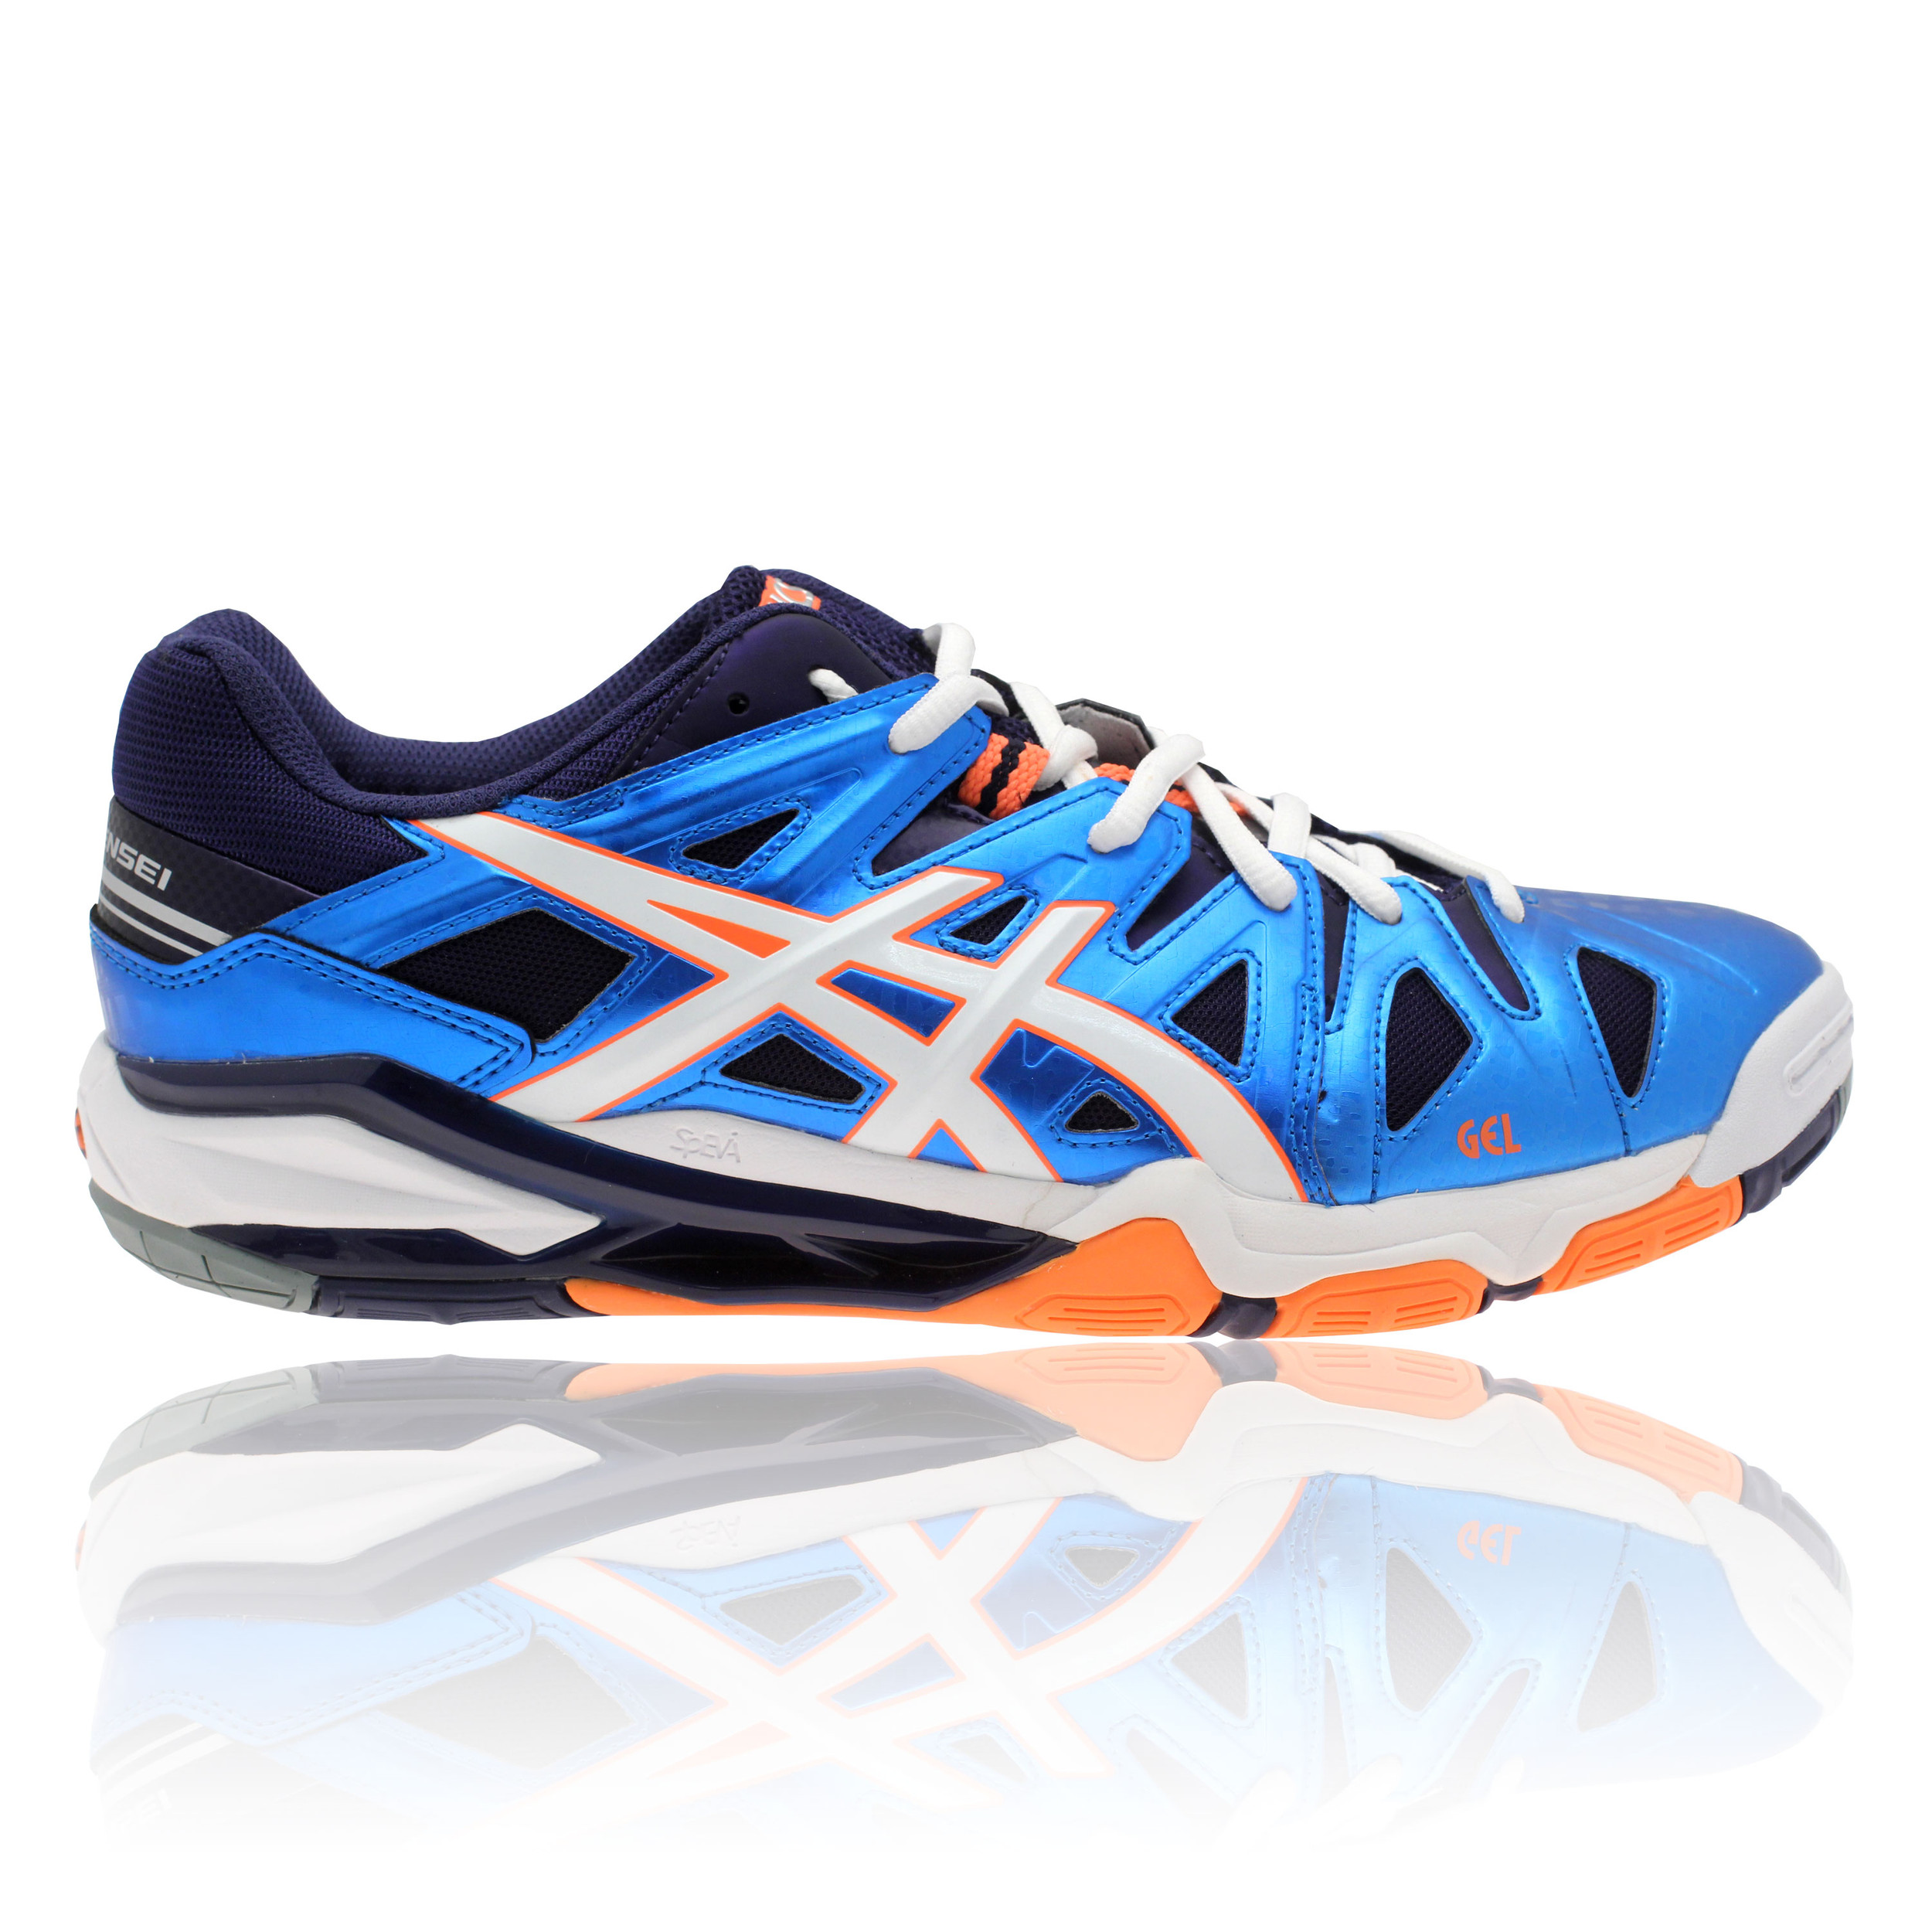 Asics Badminton Shoes Asics badminton shoes